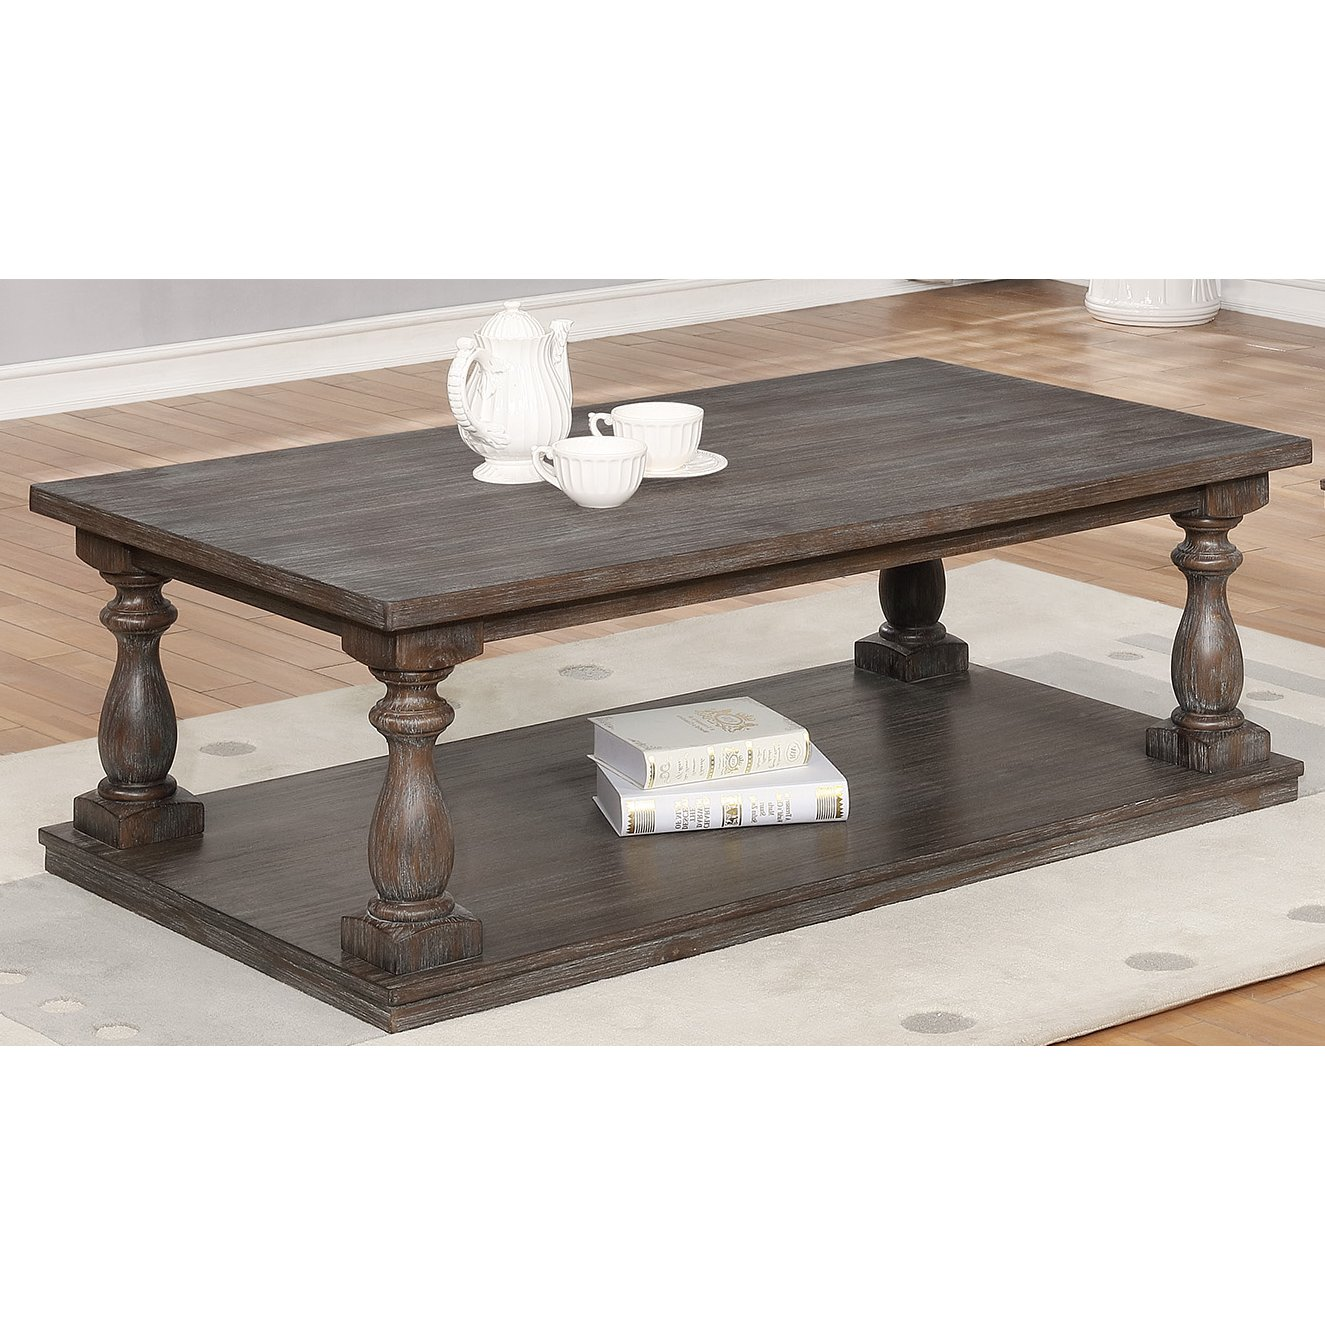 Antique Gray Coffee Table - Regent - Antique Gray Coffee Table - Regent RC Willey Furniture Store